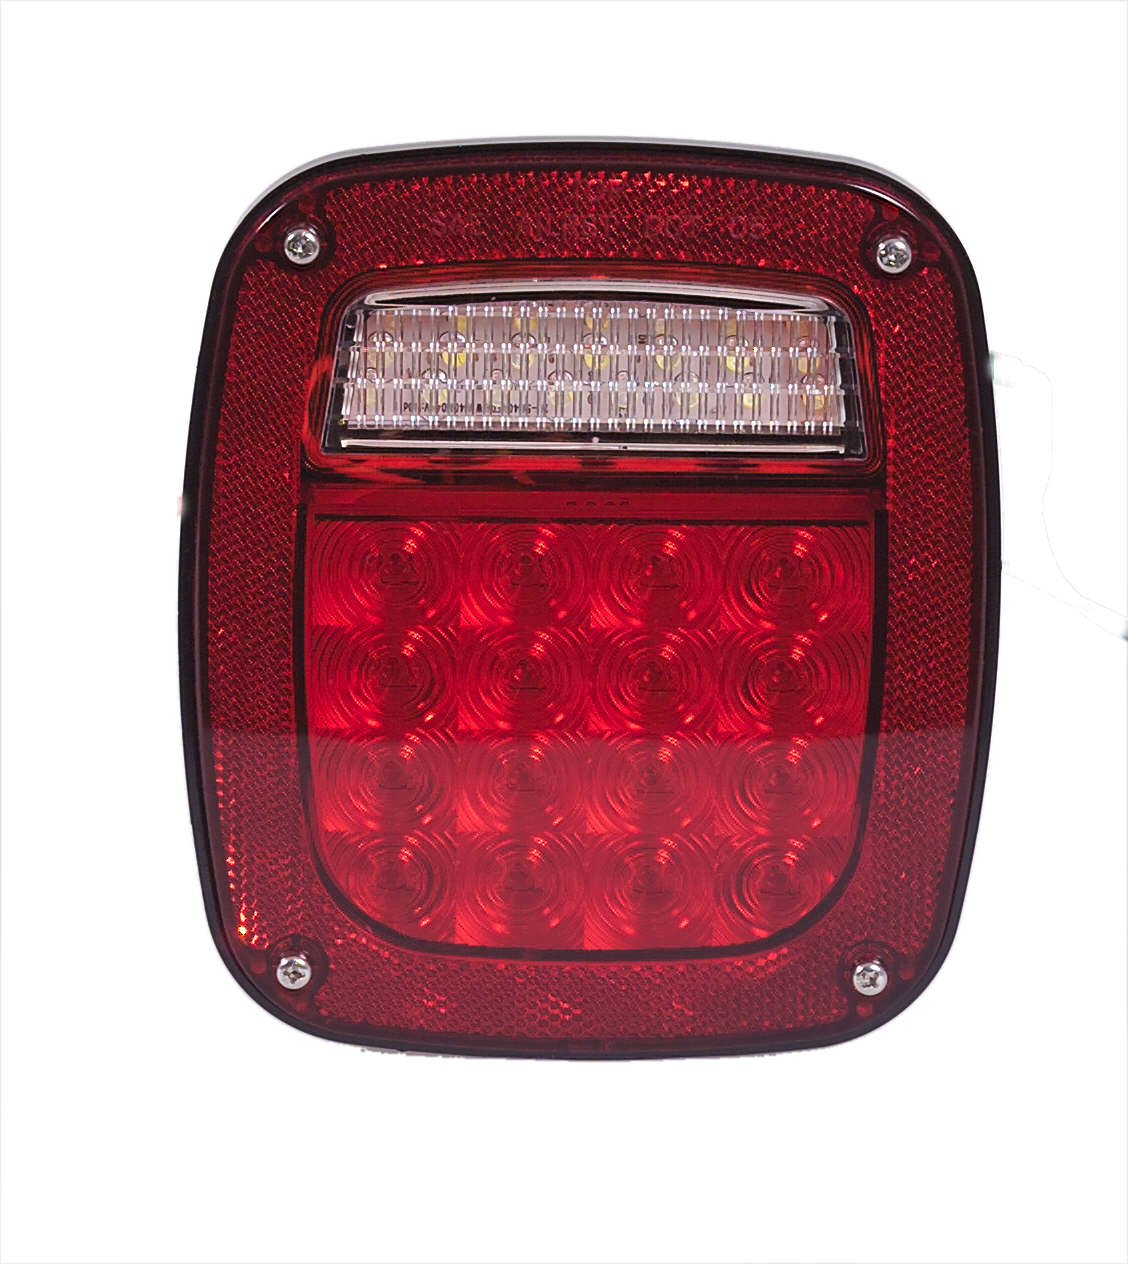 Maxxima M42220 Three Stud Box Style Multi-Function Stop Tail Turn & Back Up LED Light by Maxxima